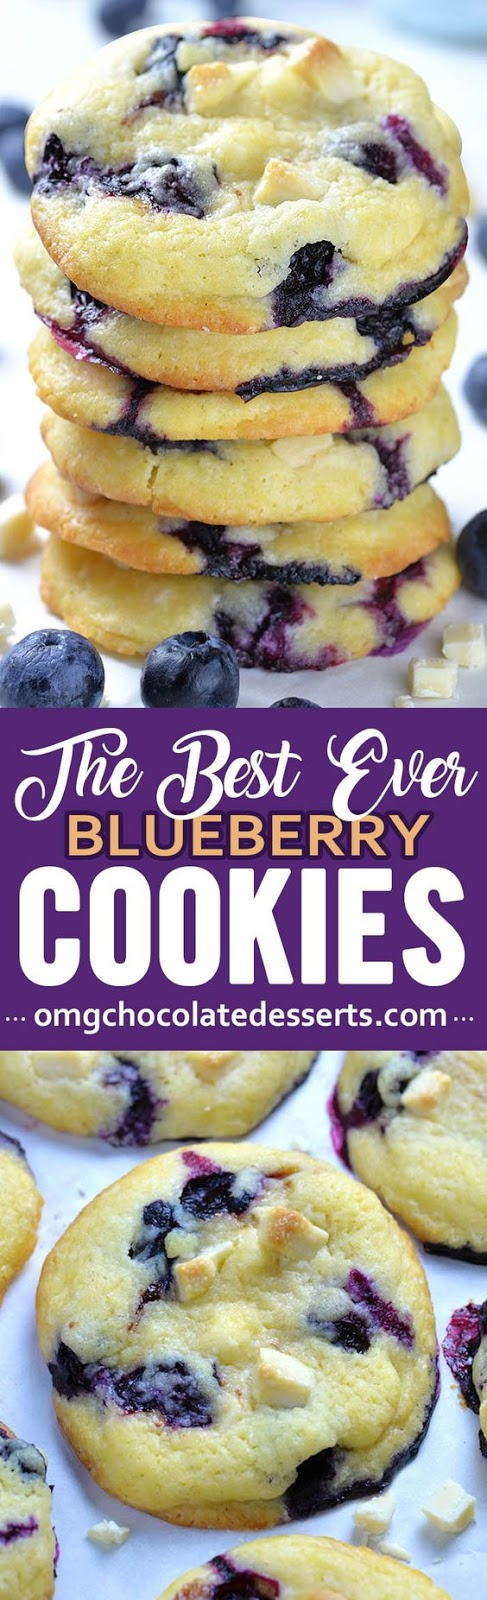 Best Ever Blueberry Cookies #cookies #cakes #desserts #cookierecipes